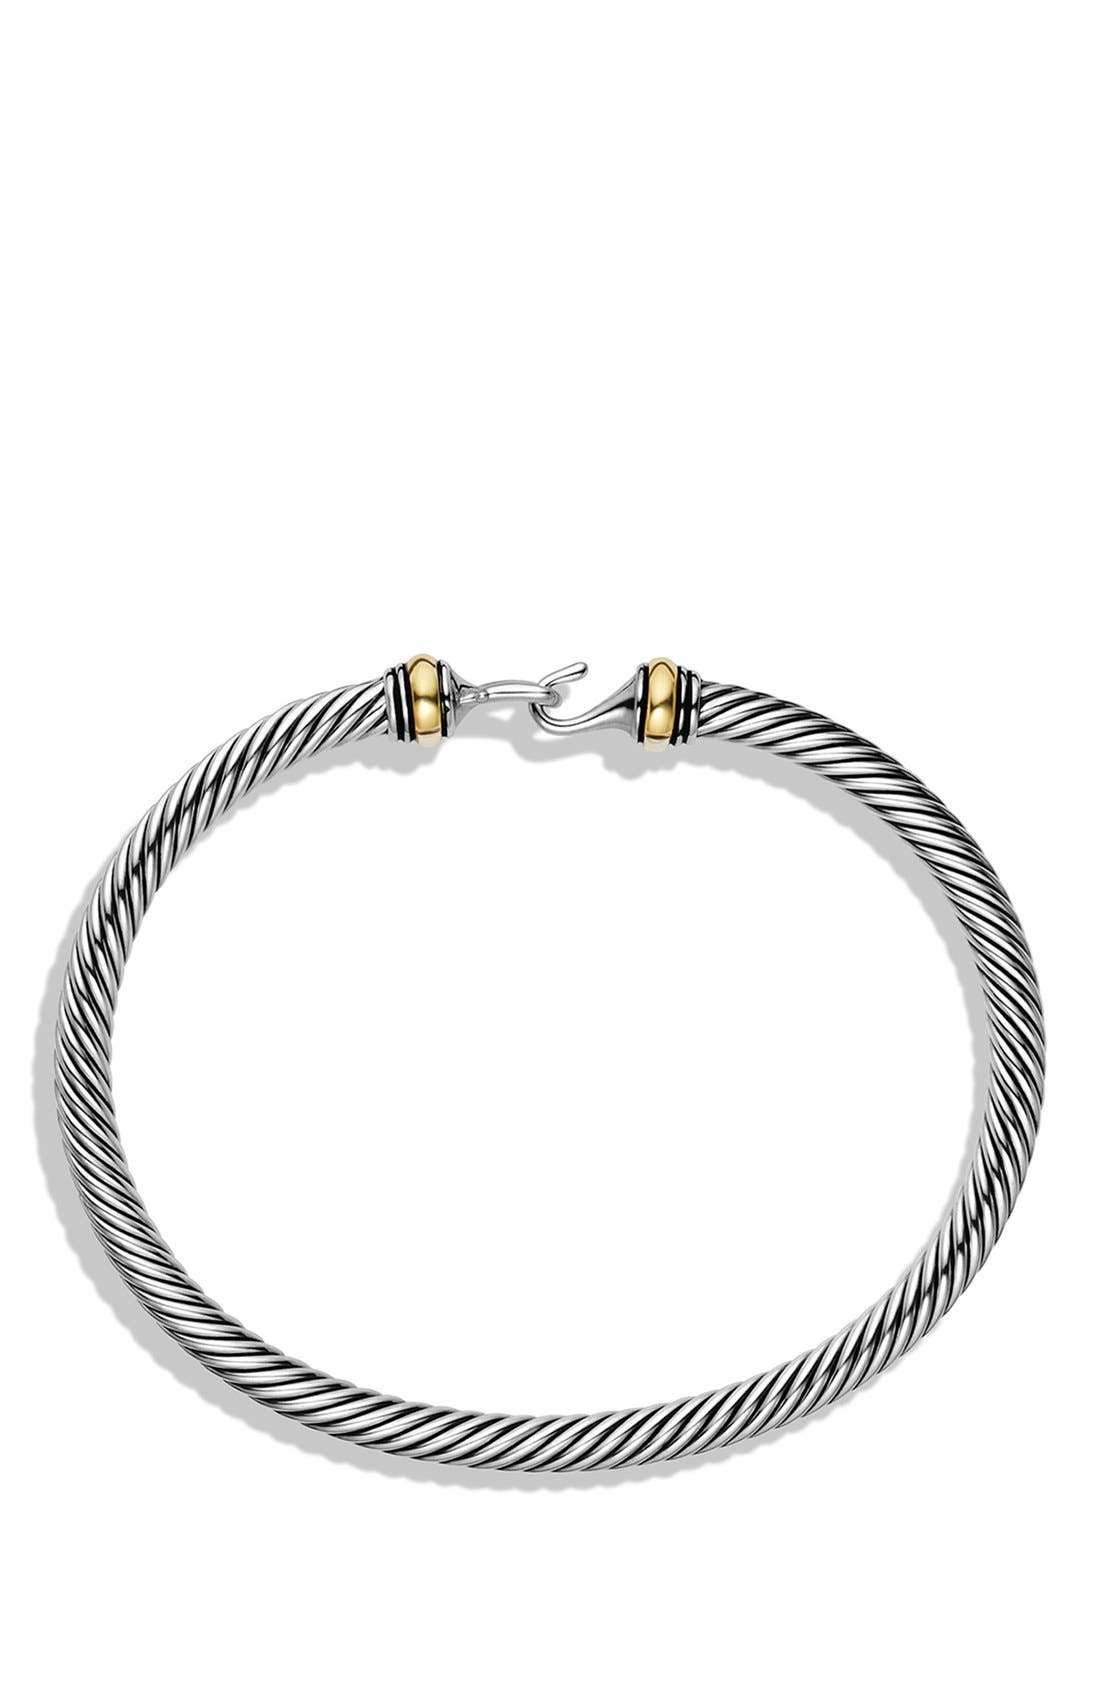 DAVID YURMAN,                             Cable Buckle Bracelet with Gold, 4mm,                             Alternate thumbnail 2, color,                             TWO TONE